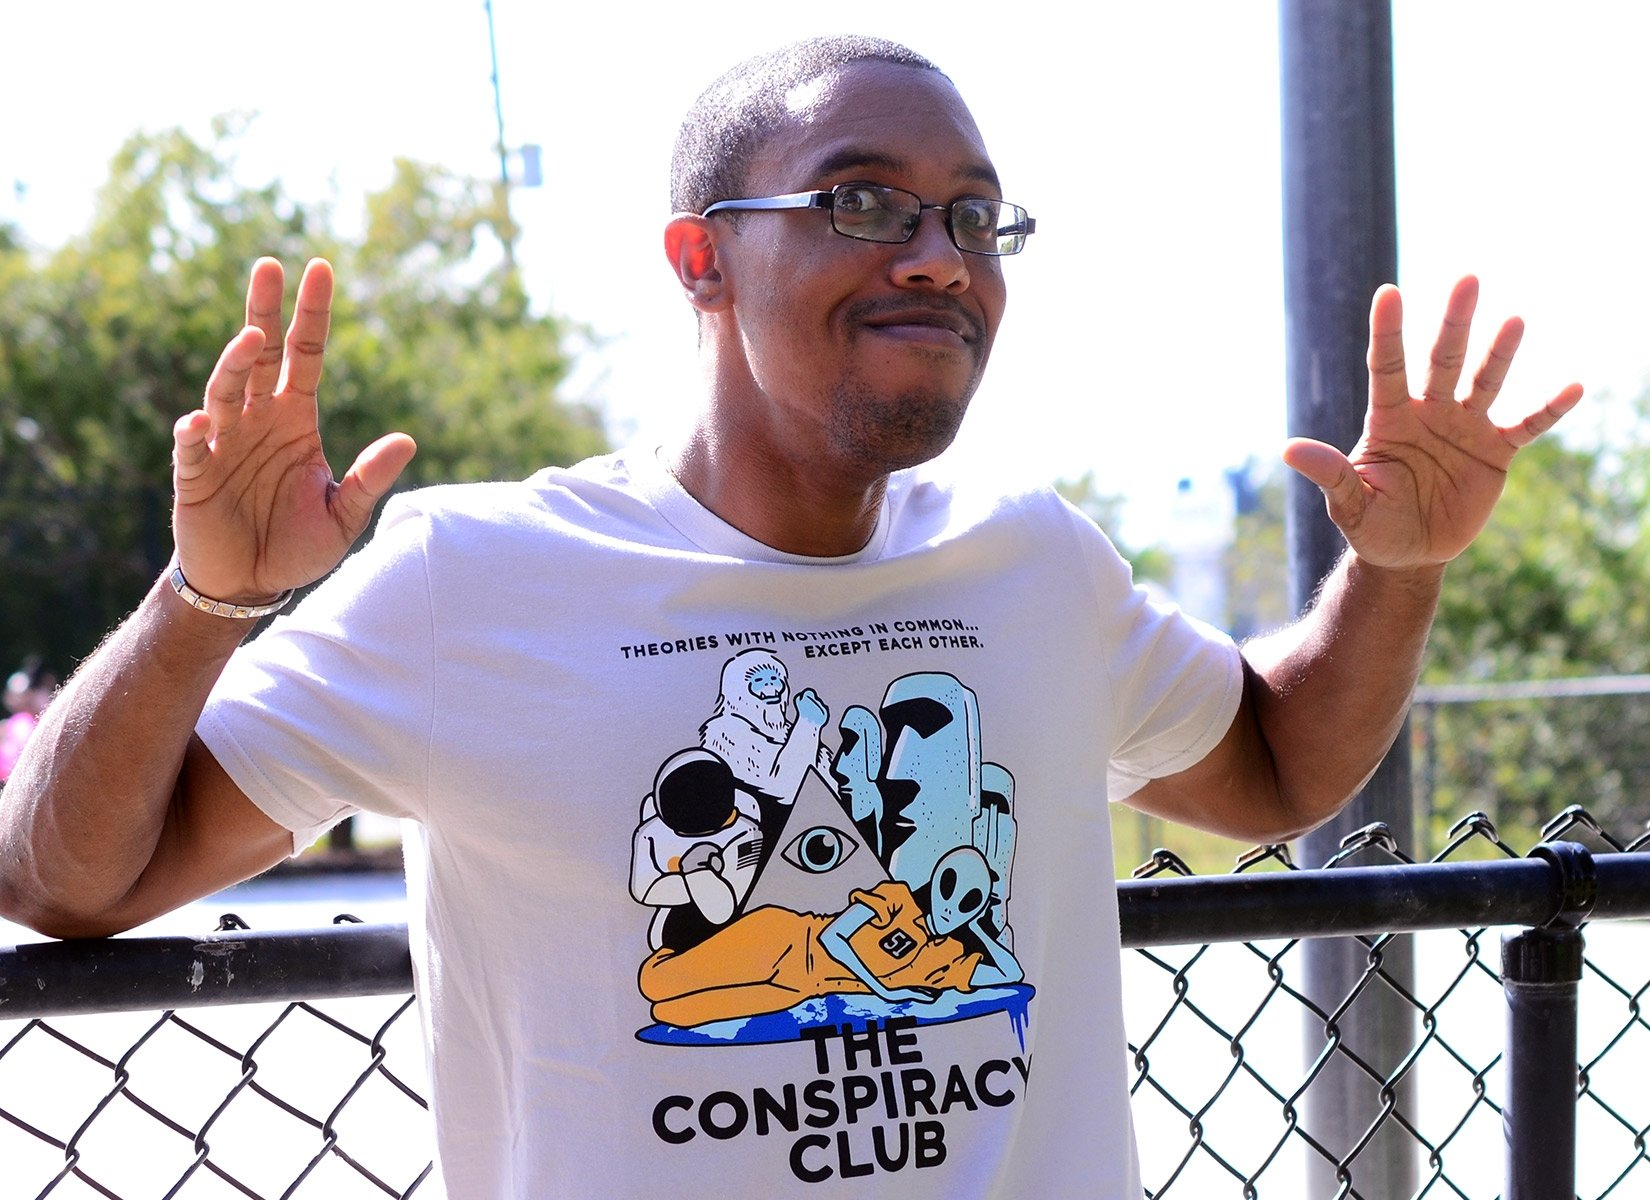 The Conspiracy Club on Mens T-Shirt